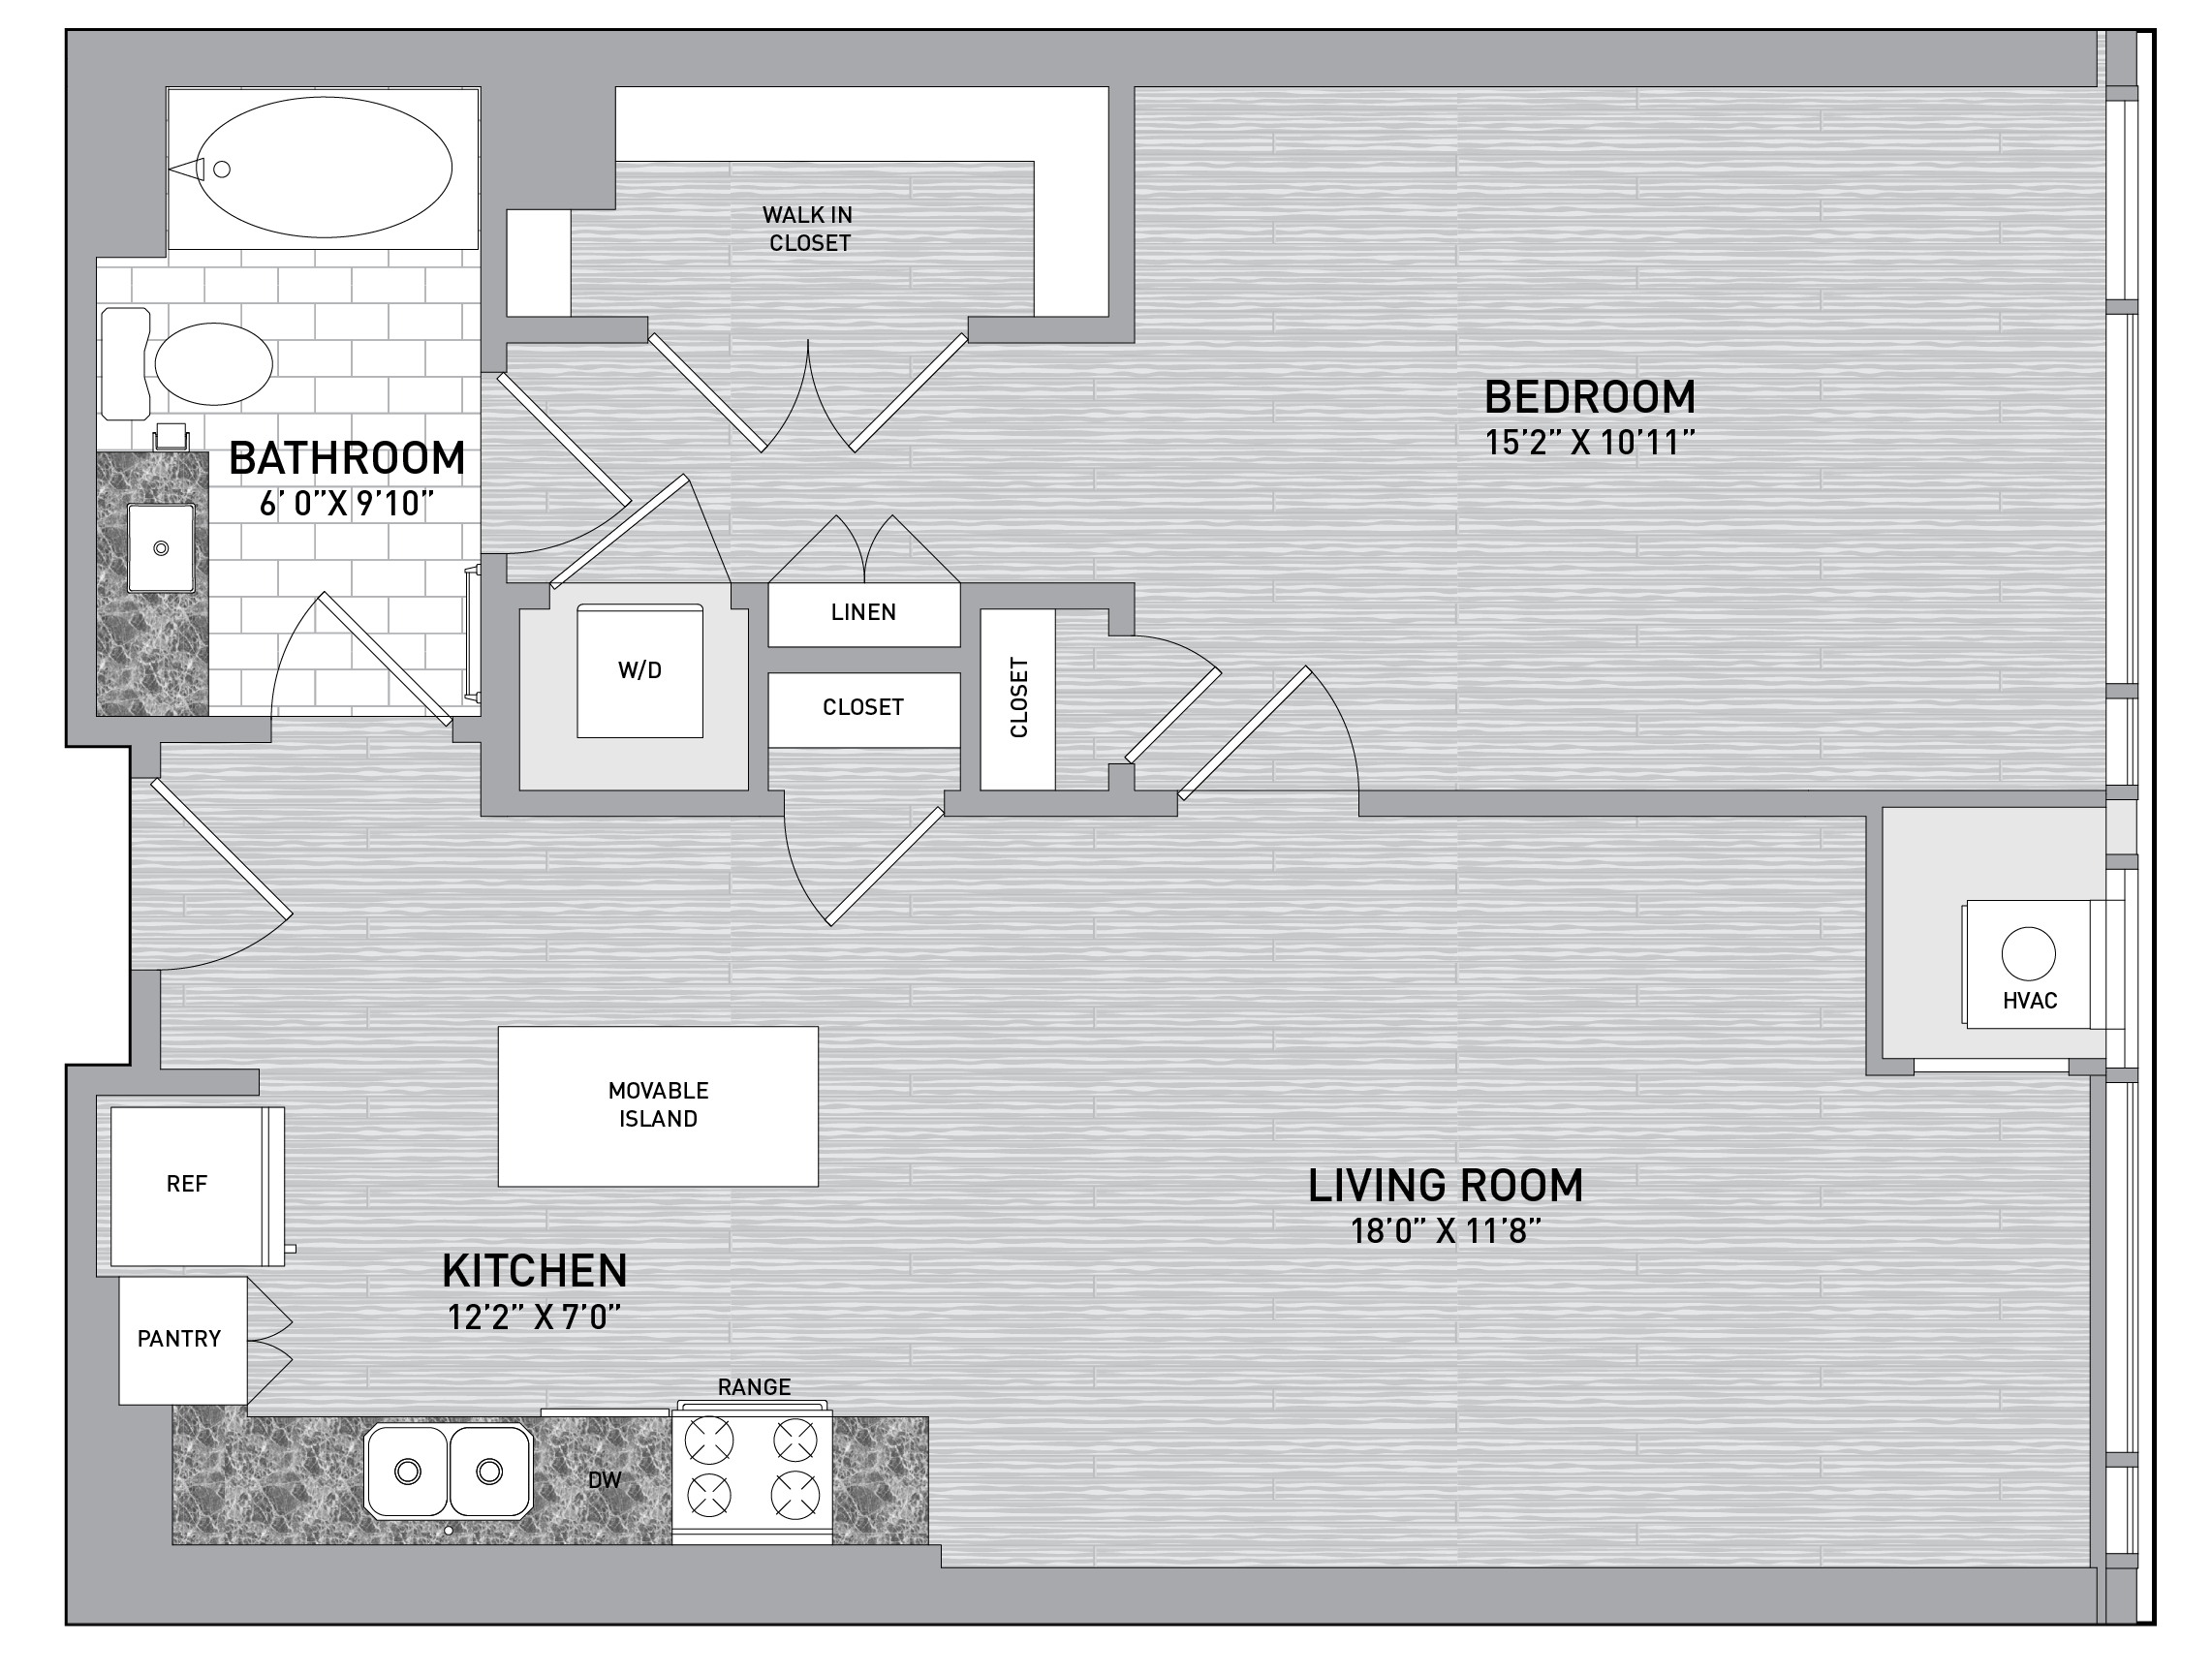 floorplan image of unit id 0727